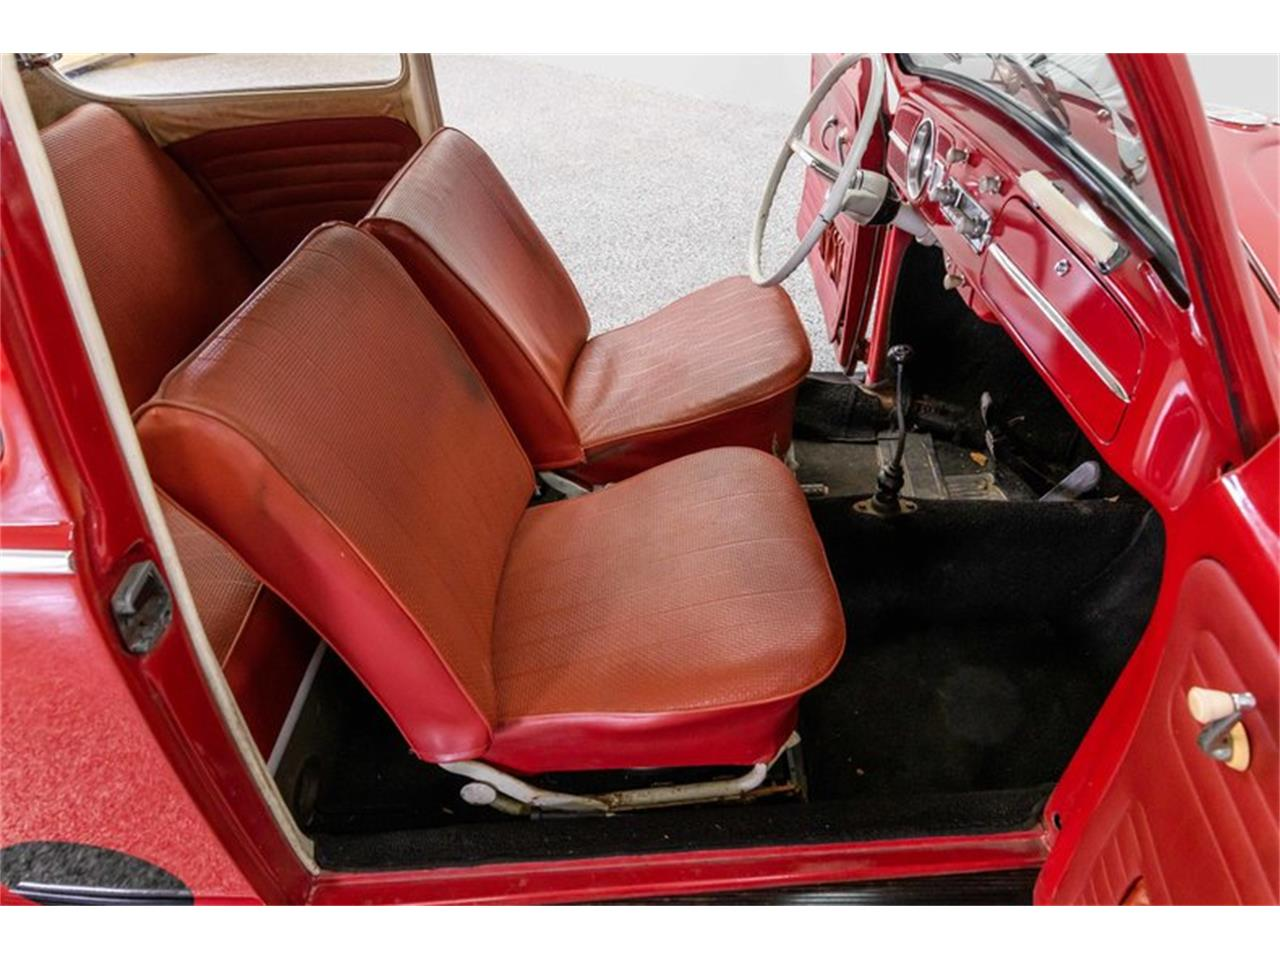 1965 Volkswagen Beetle for sale in Concord, NC – photo 18